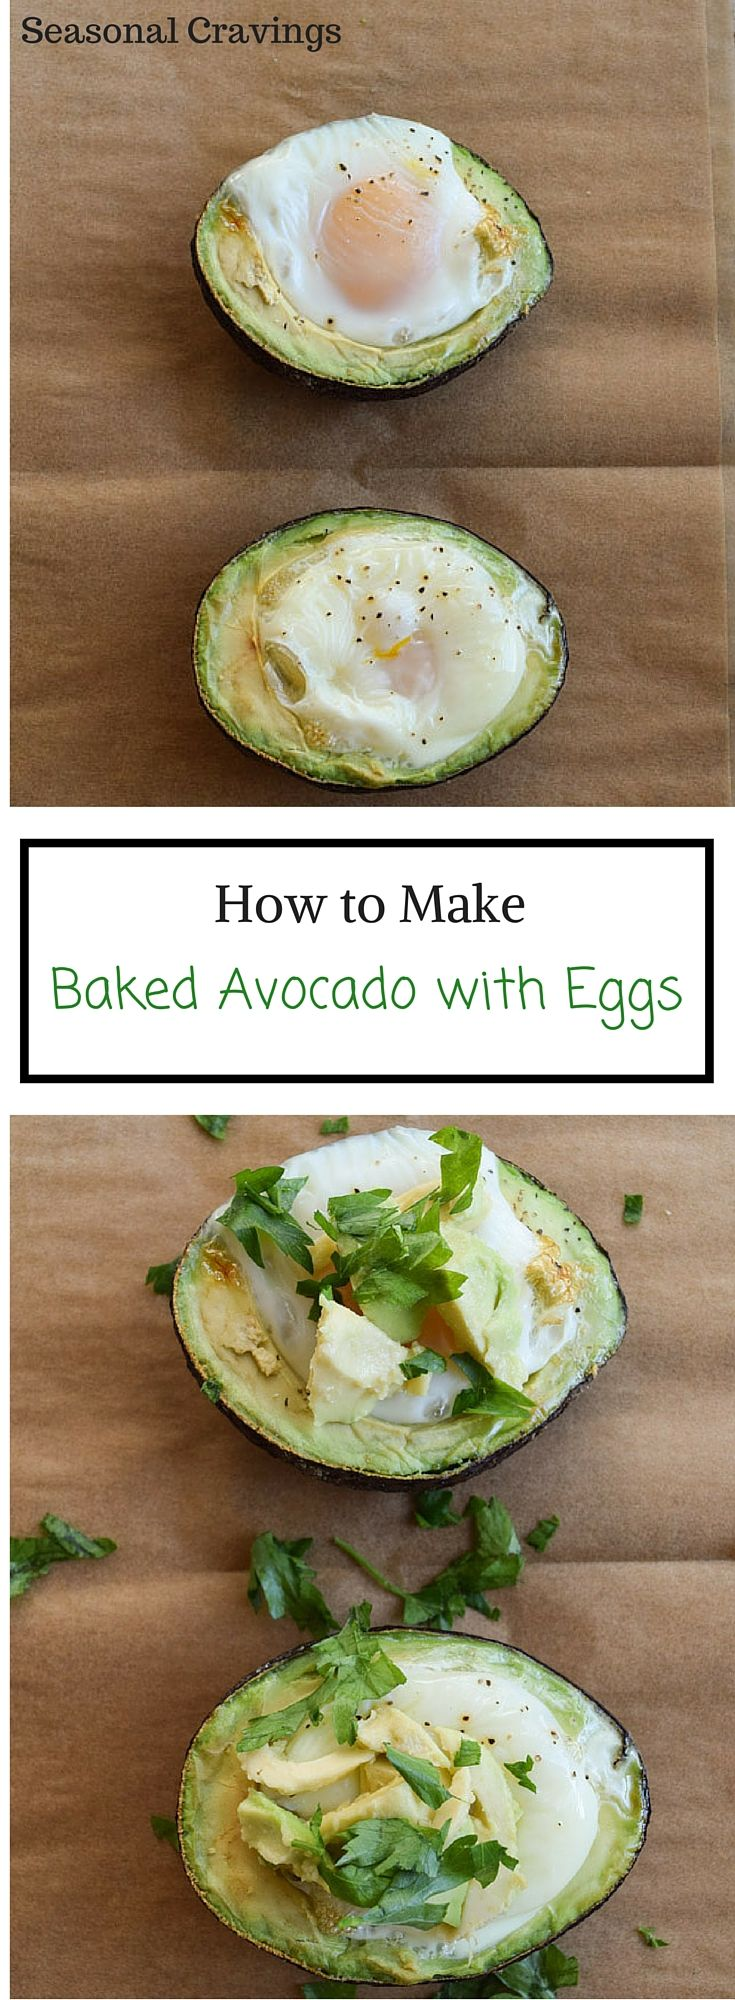 Baked Avocado with Eggs - full of protein and healthy fats. Sign up for more quick, healthy recipes at http://eepurl.com/bgGhFT